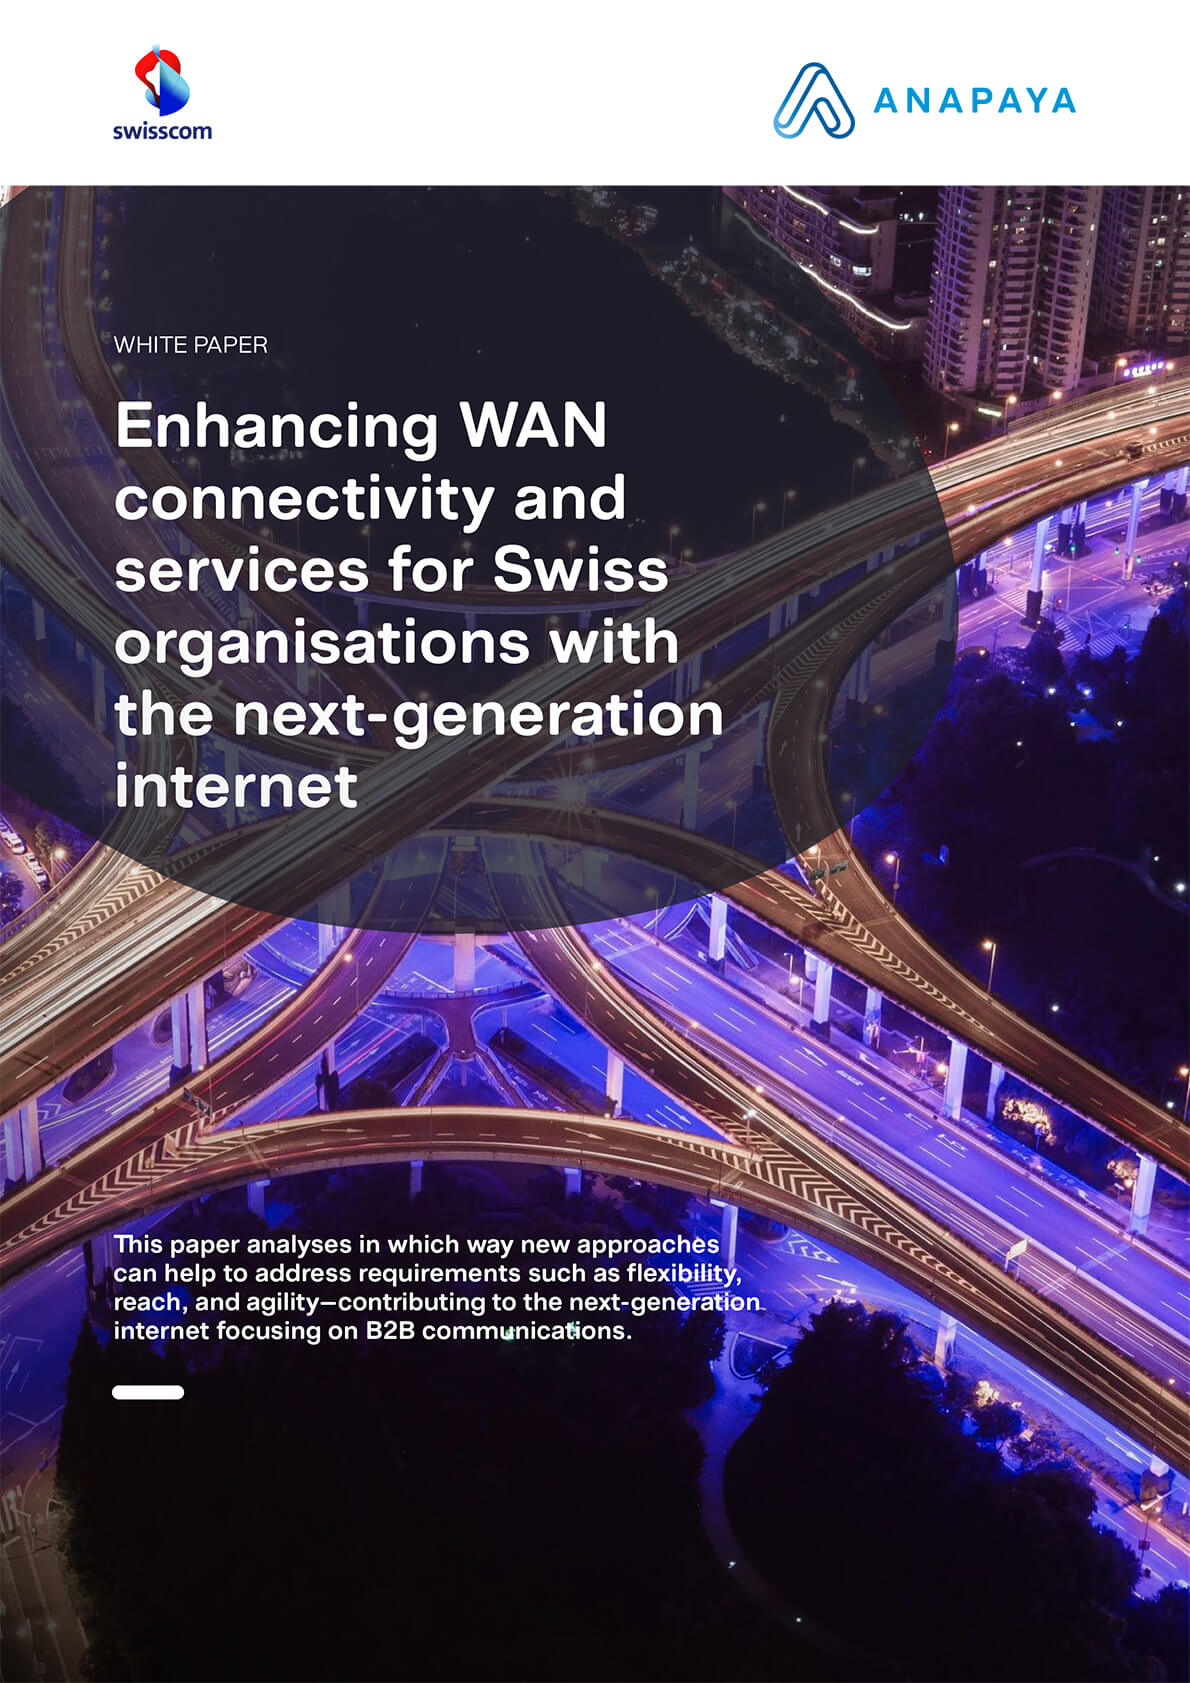 anapaya-wp-enhancing-wan-connectivity-and-services-for-swiss-organizations-en